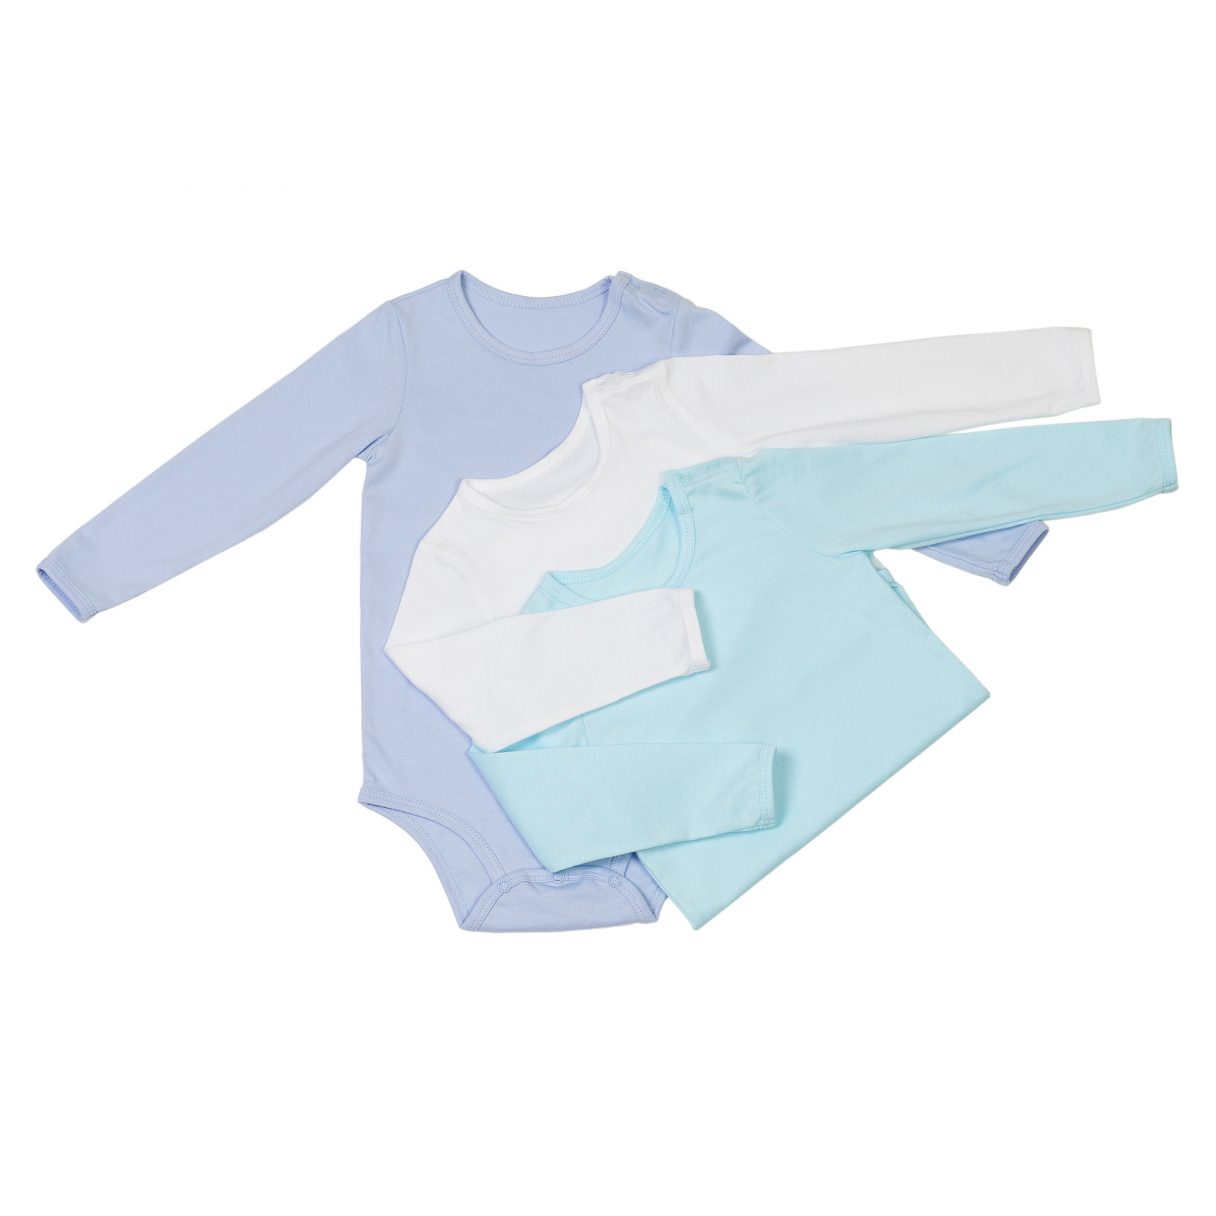 Set of 3 organic cotton baby bodysuits blue white turquoise